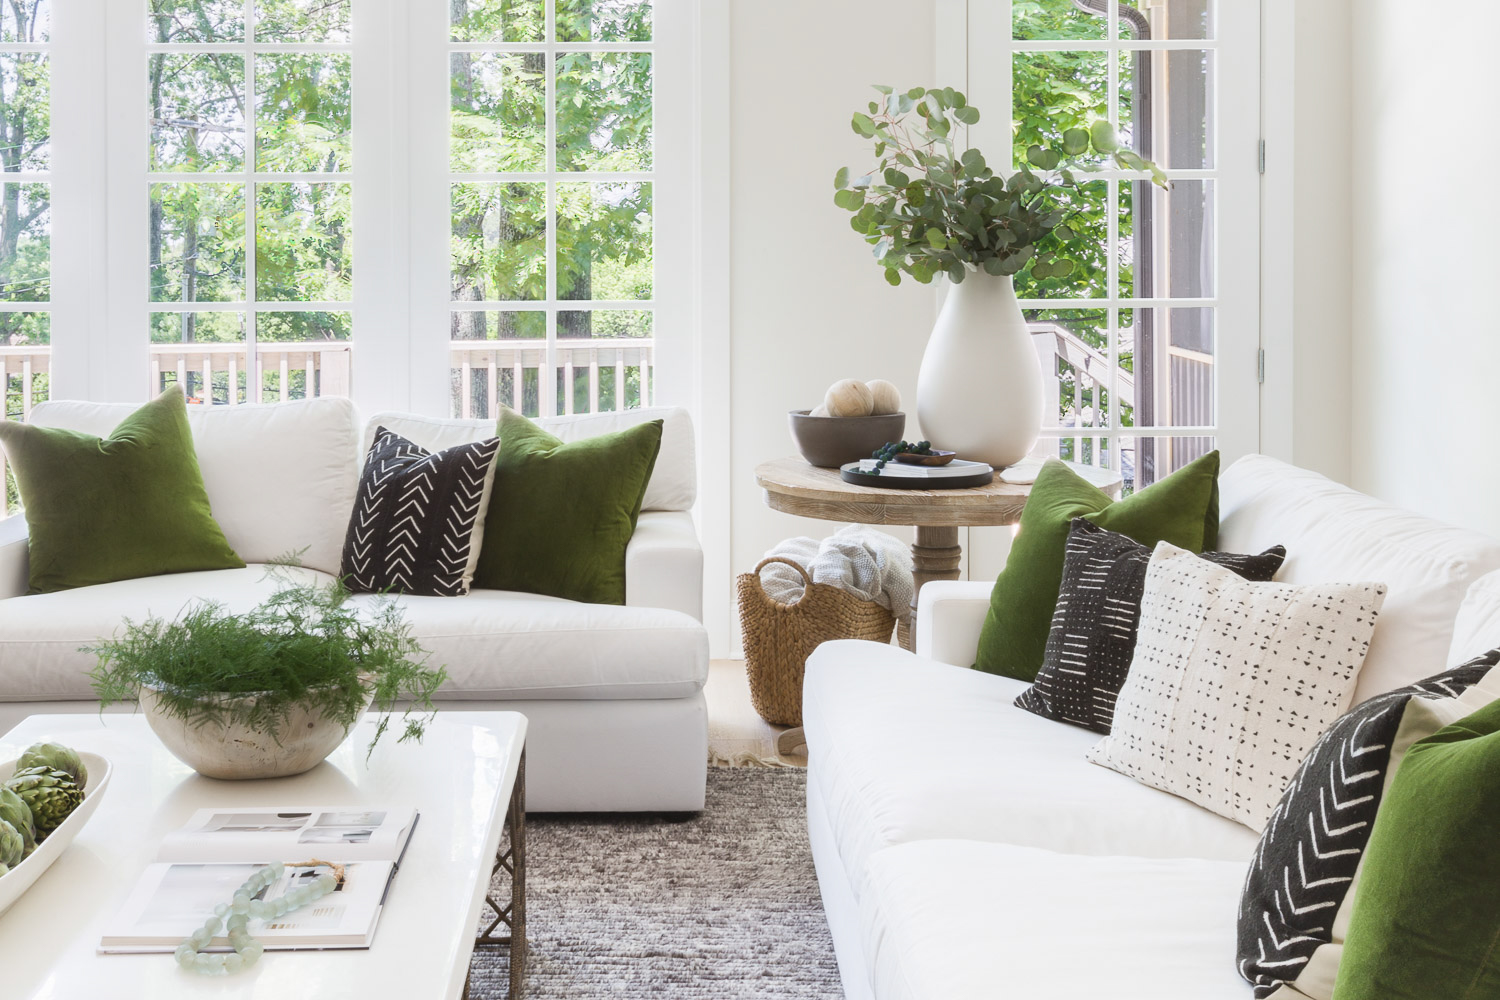 SHOP THE LOOK:    Reclaimed Wood Bowl ,  Safflower Green Velvet Pillow ,  Cassidy Coffee Table,   Aqua Glass Styling Beads ,  Round Occasional Table ,  Sydney Sofa  | Scout & Nimble Design,  Hilltop Home Project  | Photography by  Alyssa Rosenheck